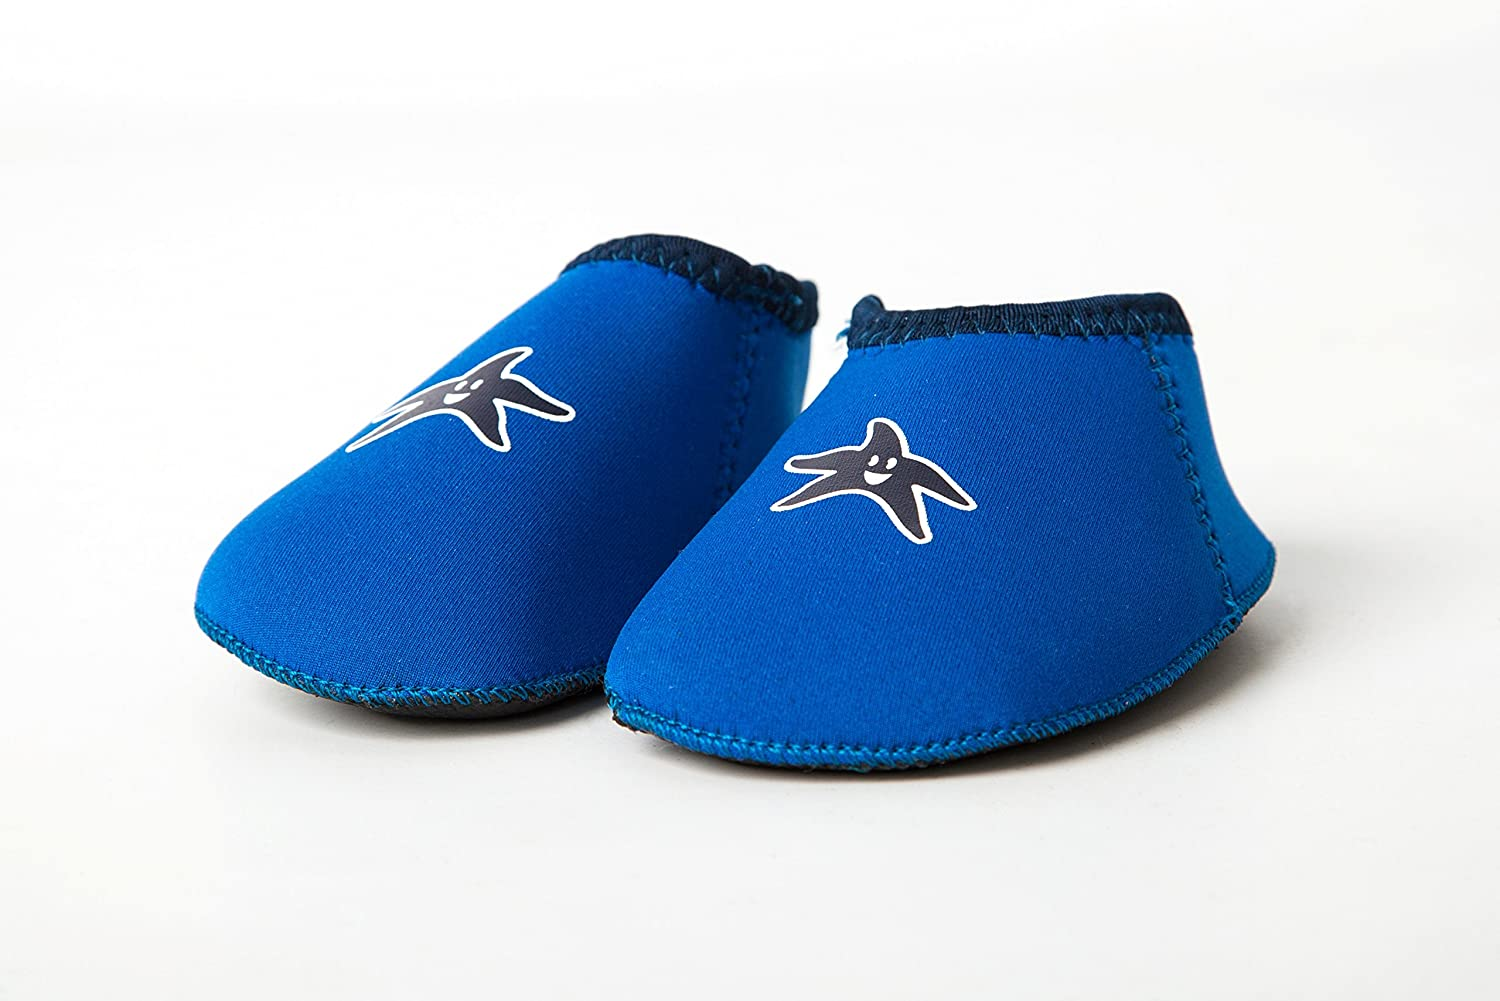 Shore Feet Padder Shoes Blue (Size L (18-24 months)) Yoccoes Designs 10/070/B3